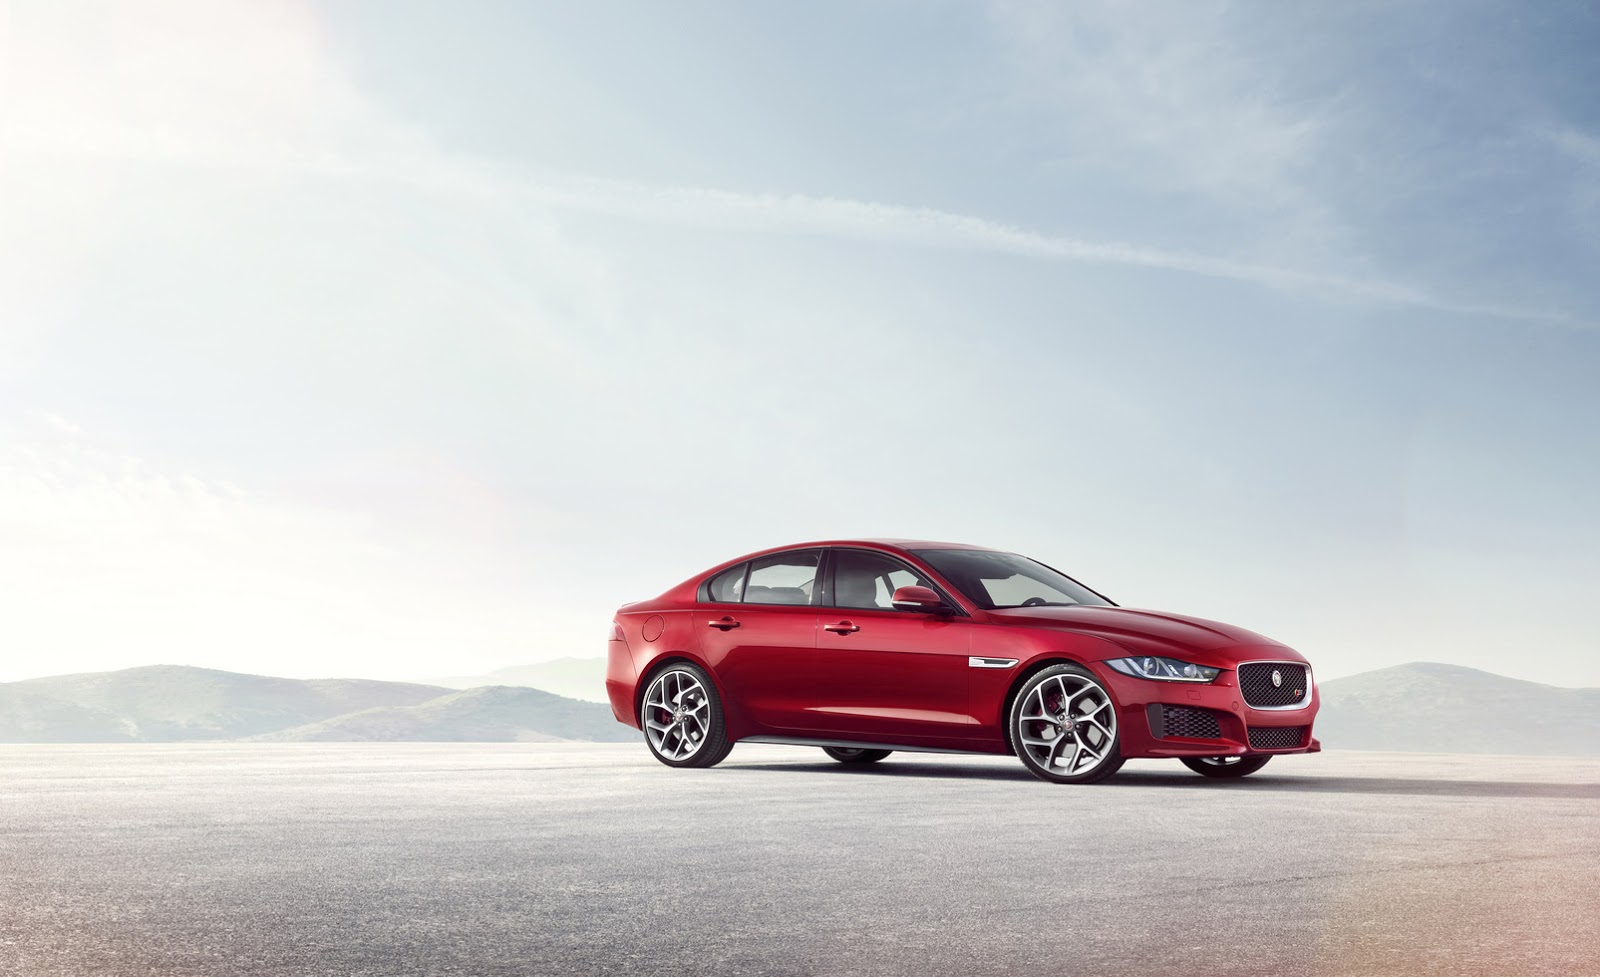 new 2016 jaguar xe sports saloon 52 hd photos and full. Black Bedroom Furniture Sets. Home Design Ideas